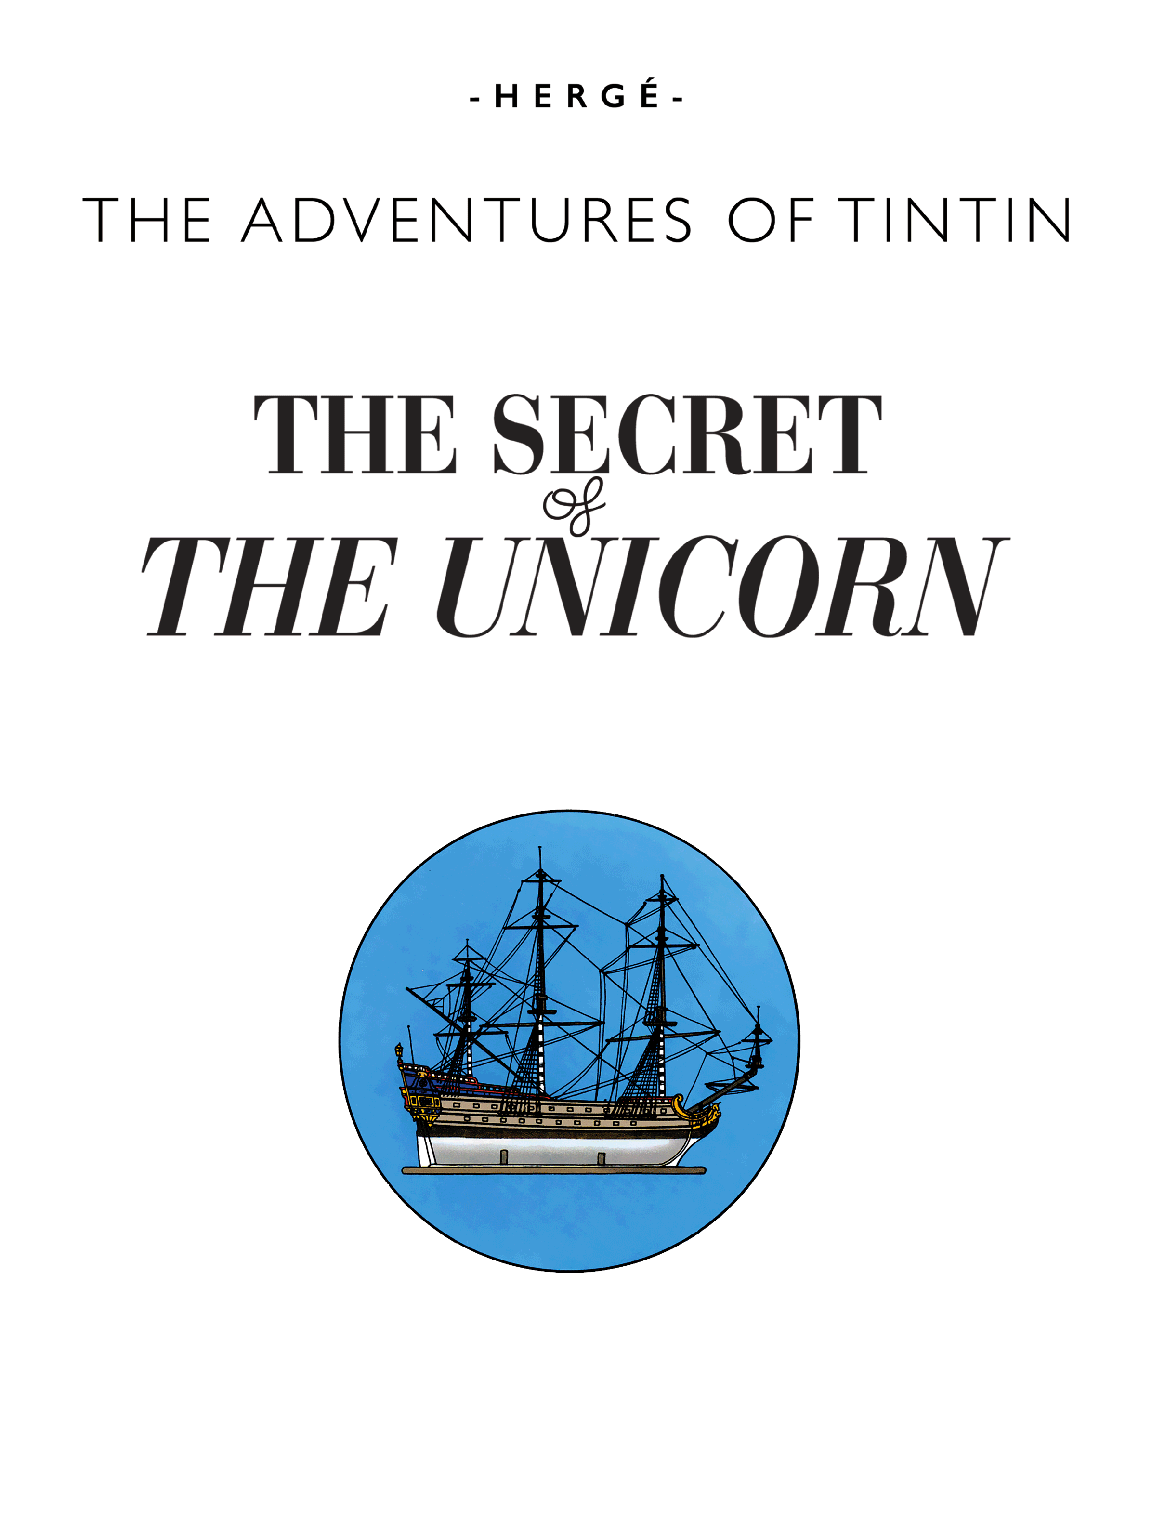 The Secret of the Unicorn - Title page